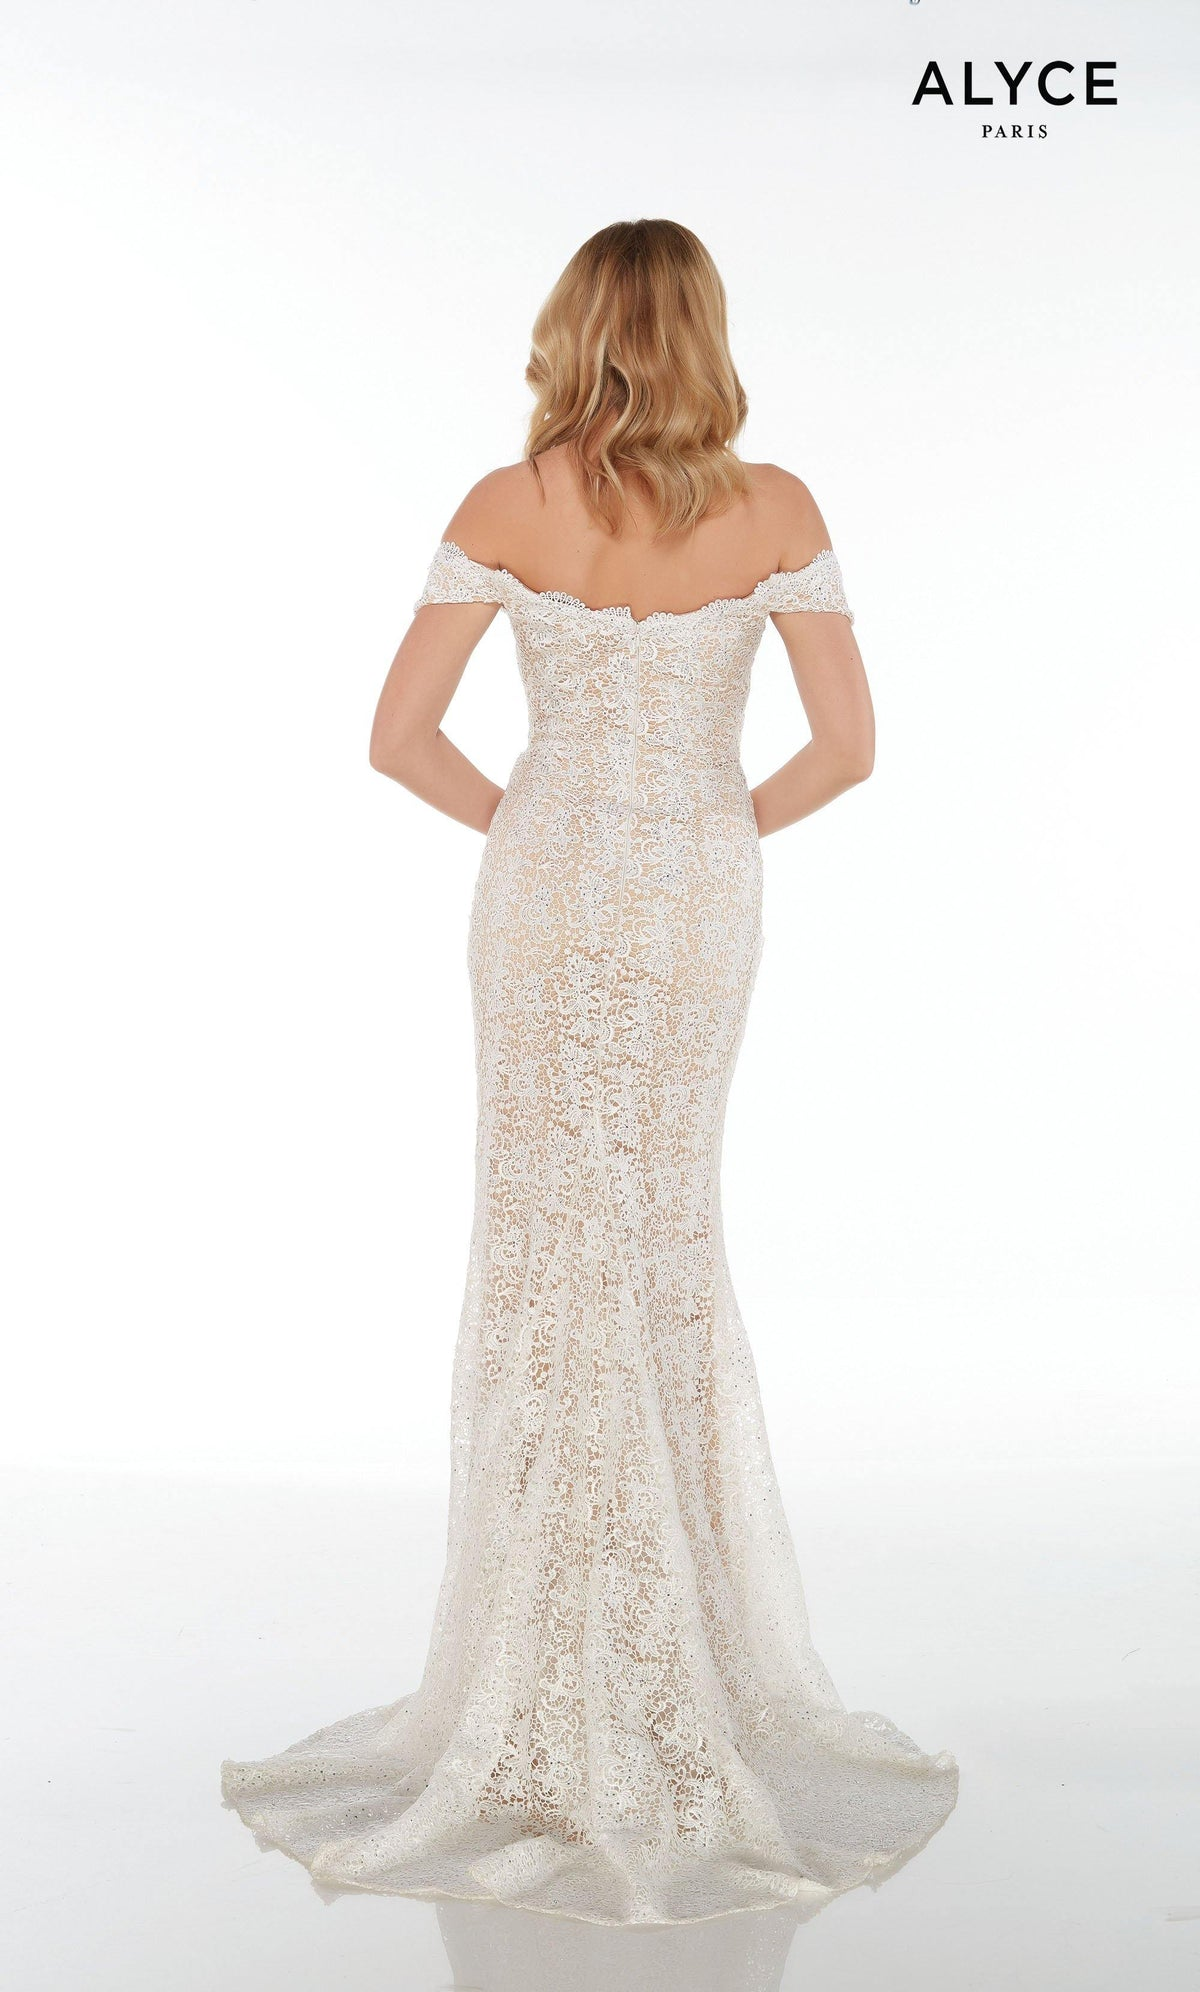 Long White-Nude lace off the shoulder guest of wedding dress with an enclosed back and a train